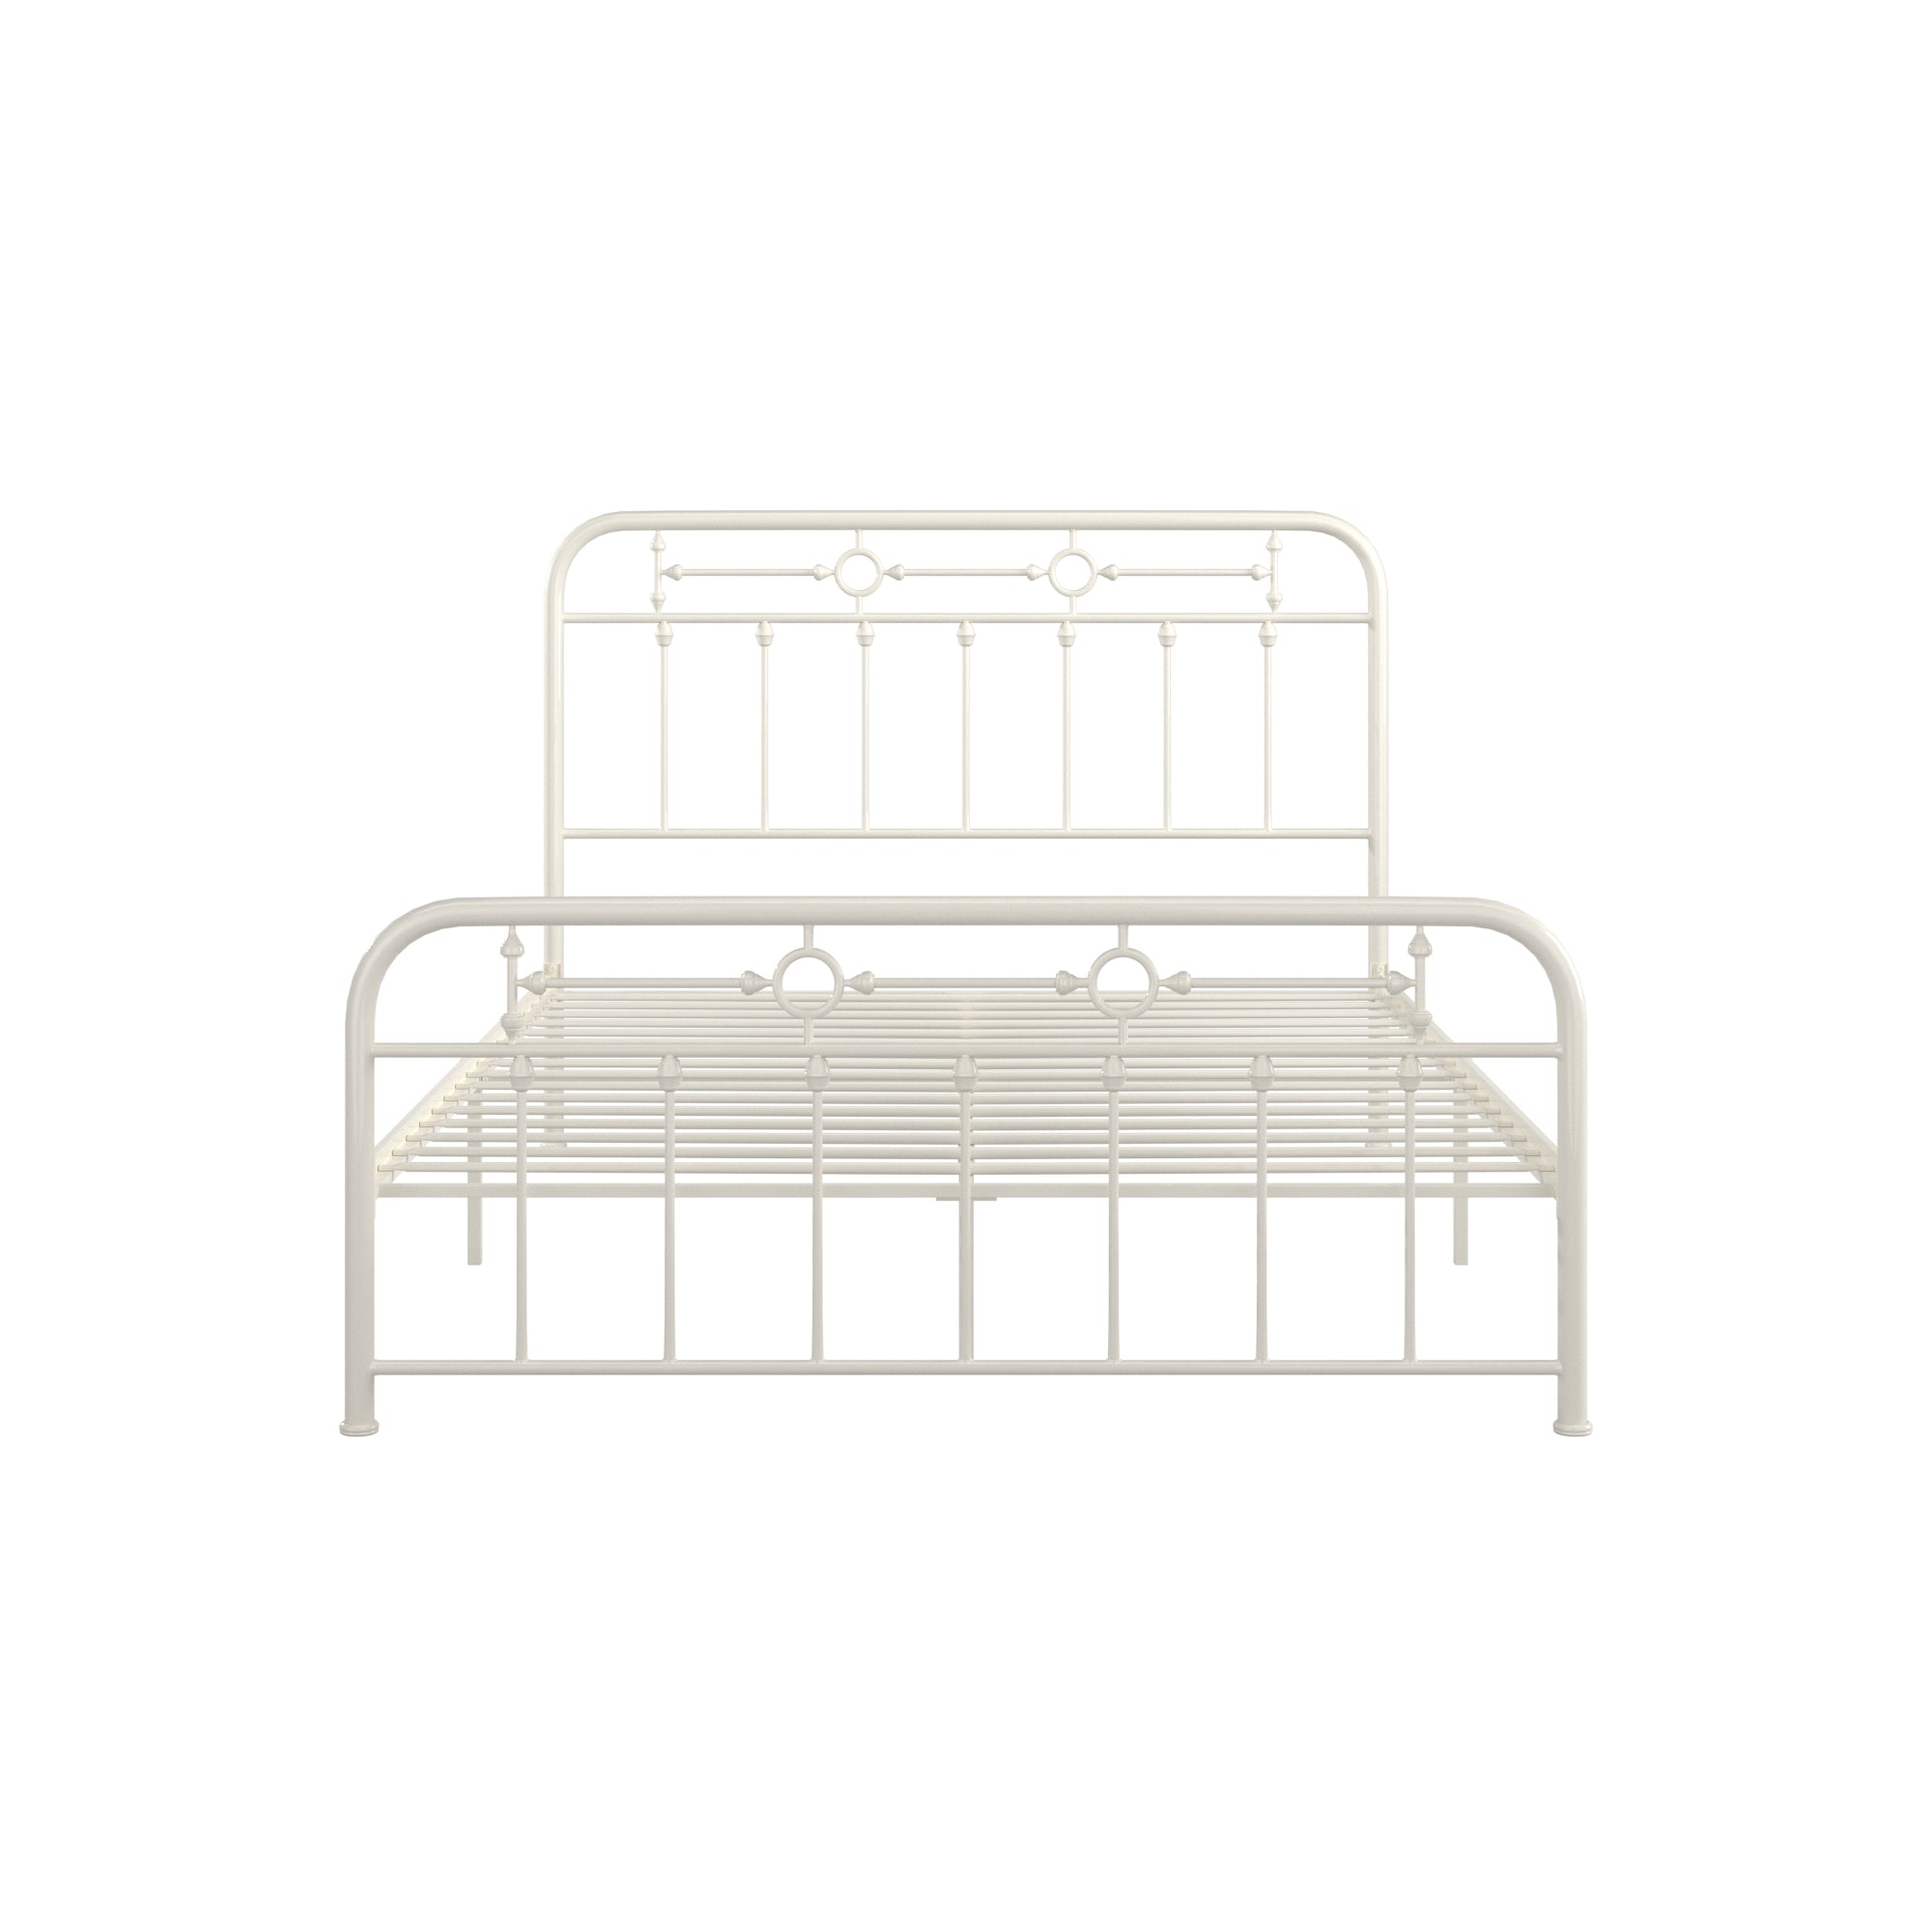 Metal Spindle Platform Bed - White, Queen Size (Queen Size)